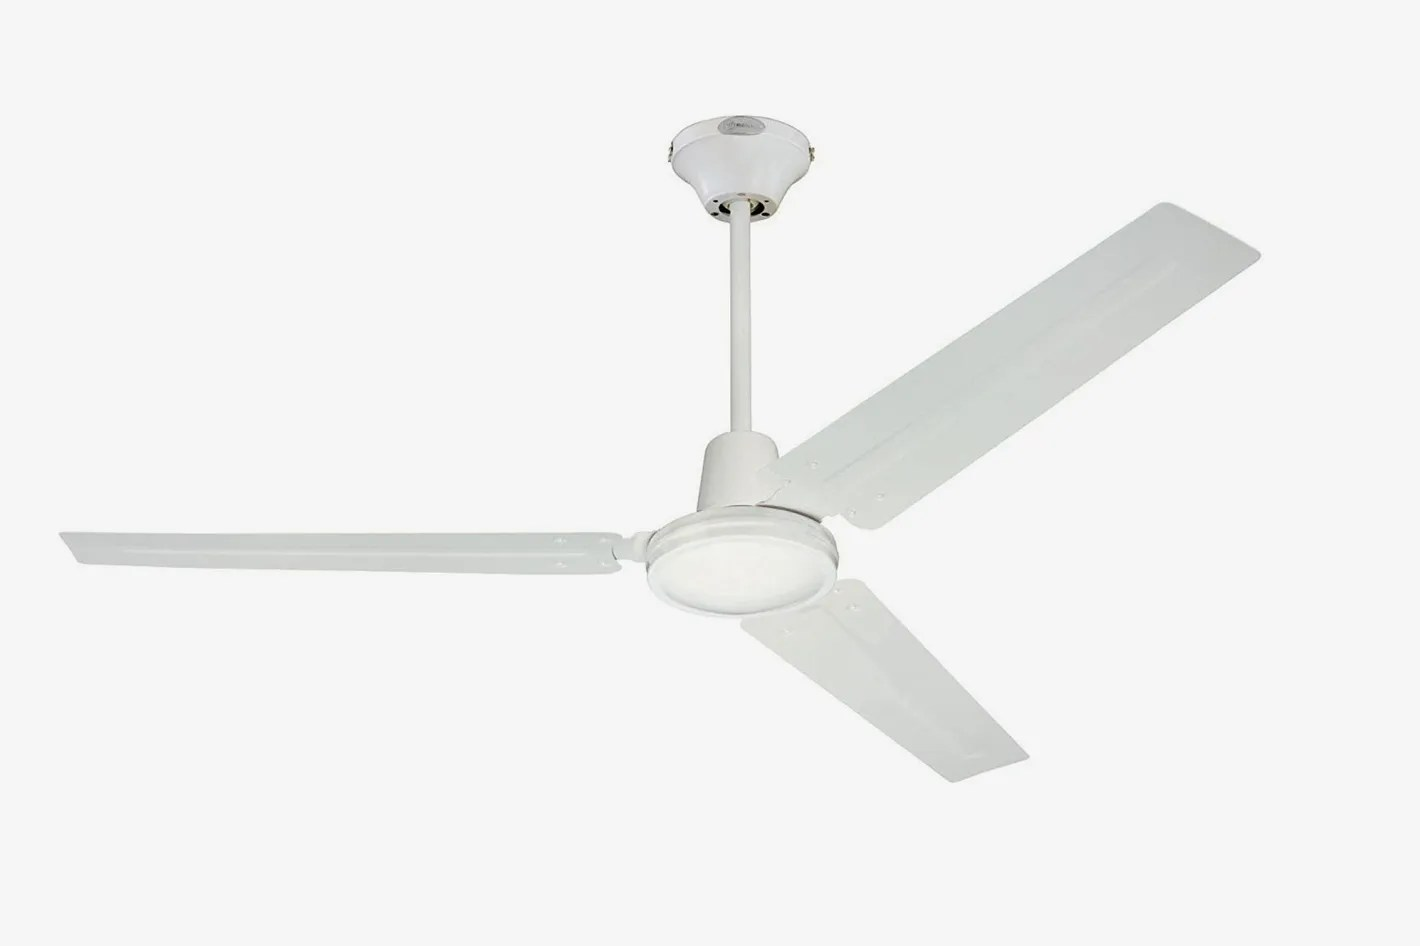 Unusual Ceiling Fans For Sale Westinghouse Industrial 56 Inch Three Blade Indoor Ceiling Fan